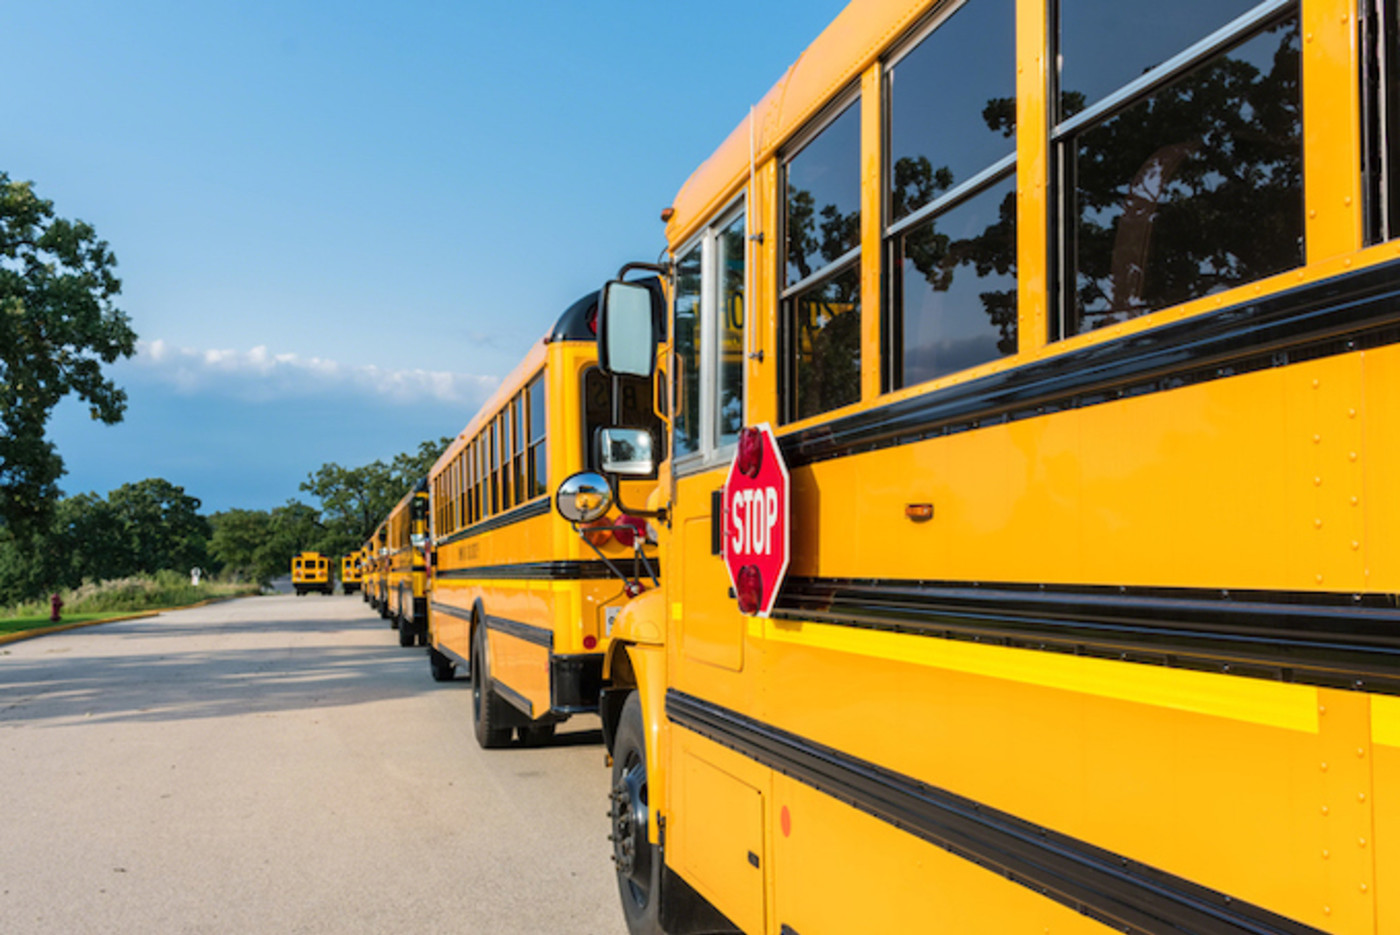 This is a picture of a school bus.